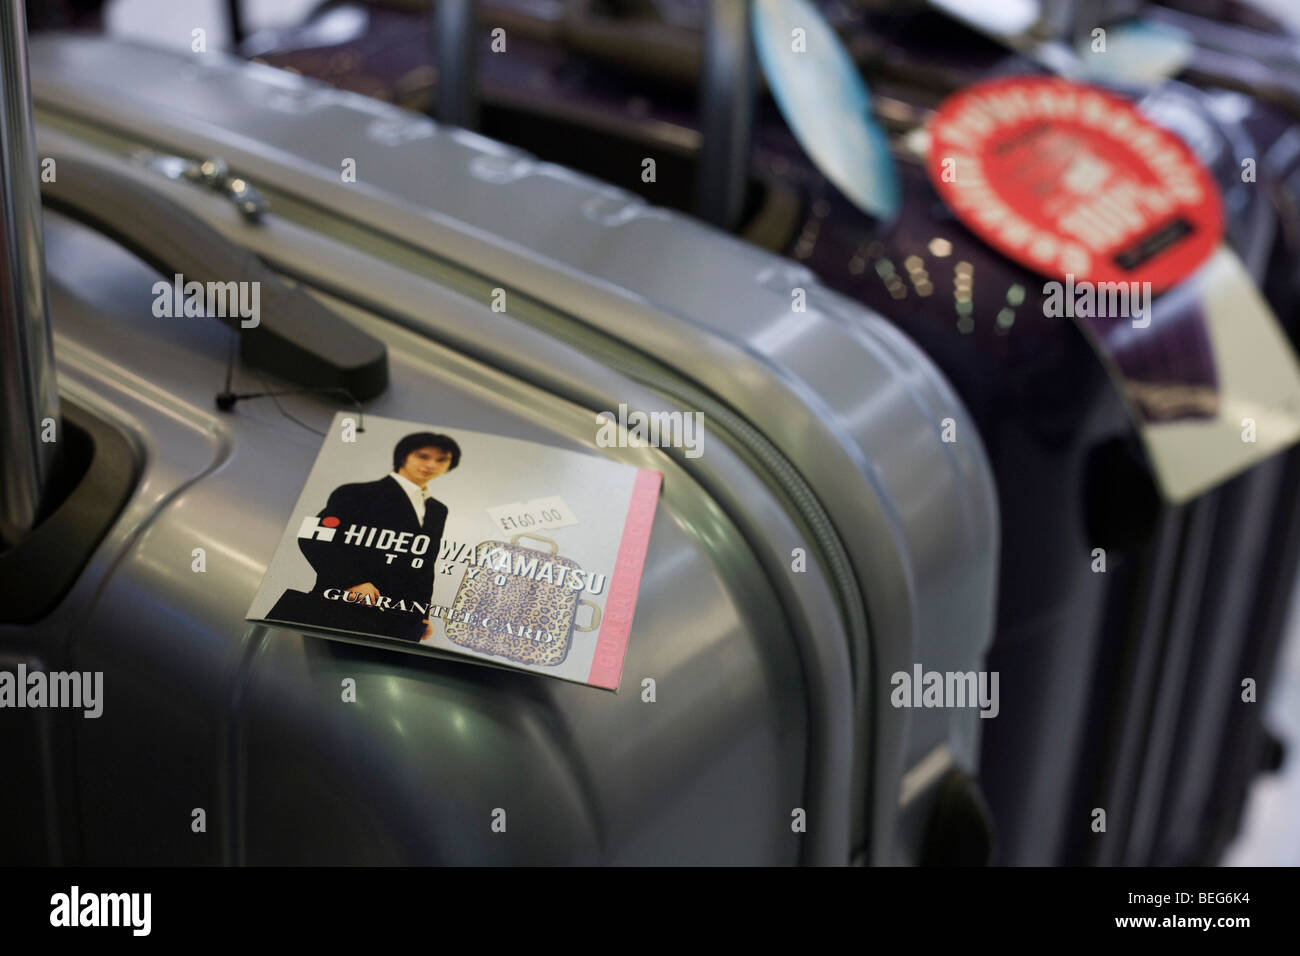 Hideo Wakamatsu Suitcases on sale at the Excess Baggage' shop in departures at Heathrow airport's terminal - Stock Image